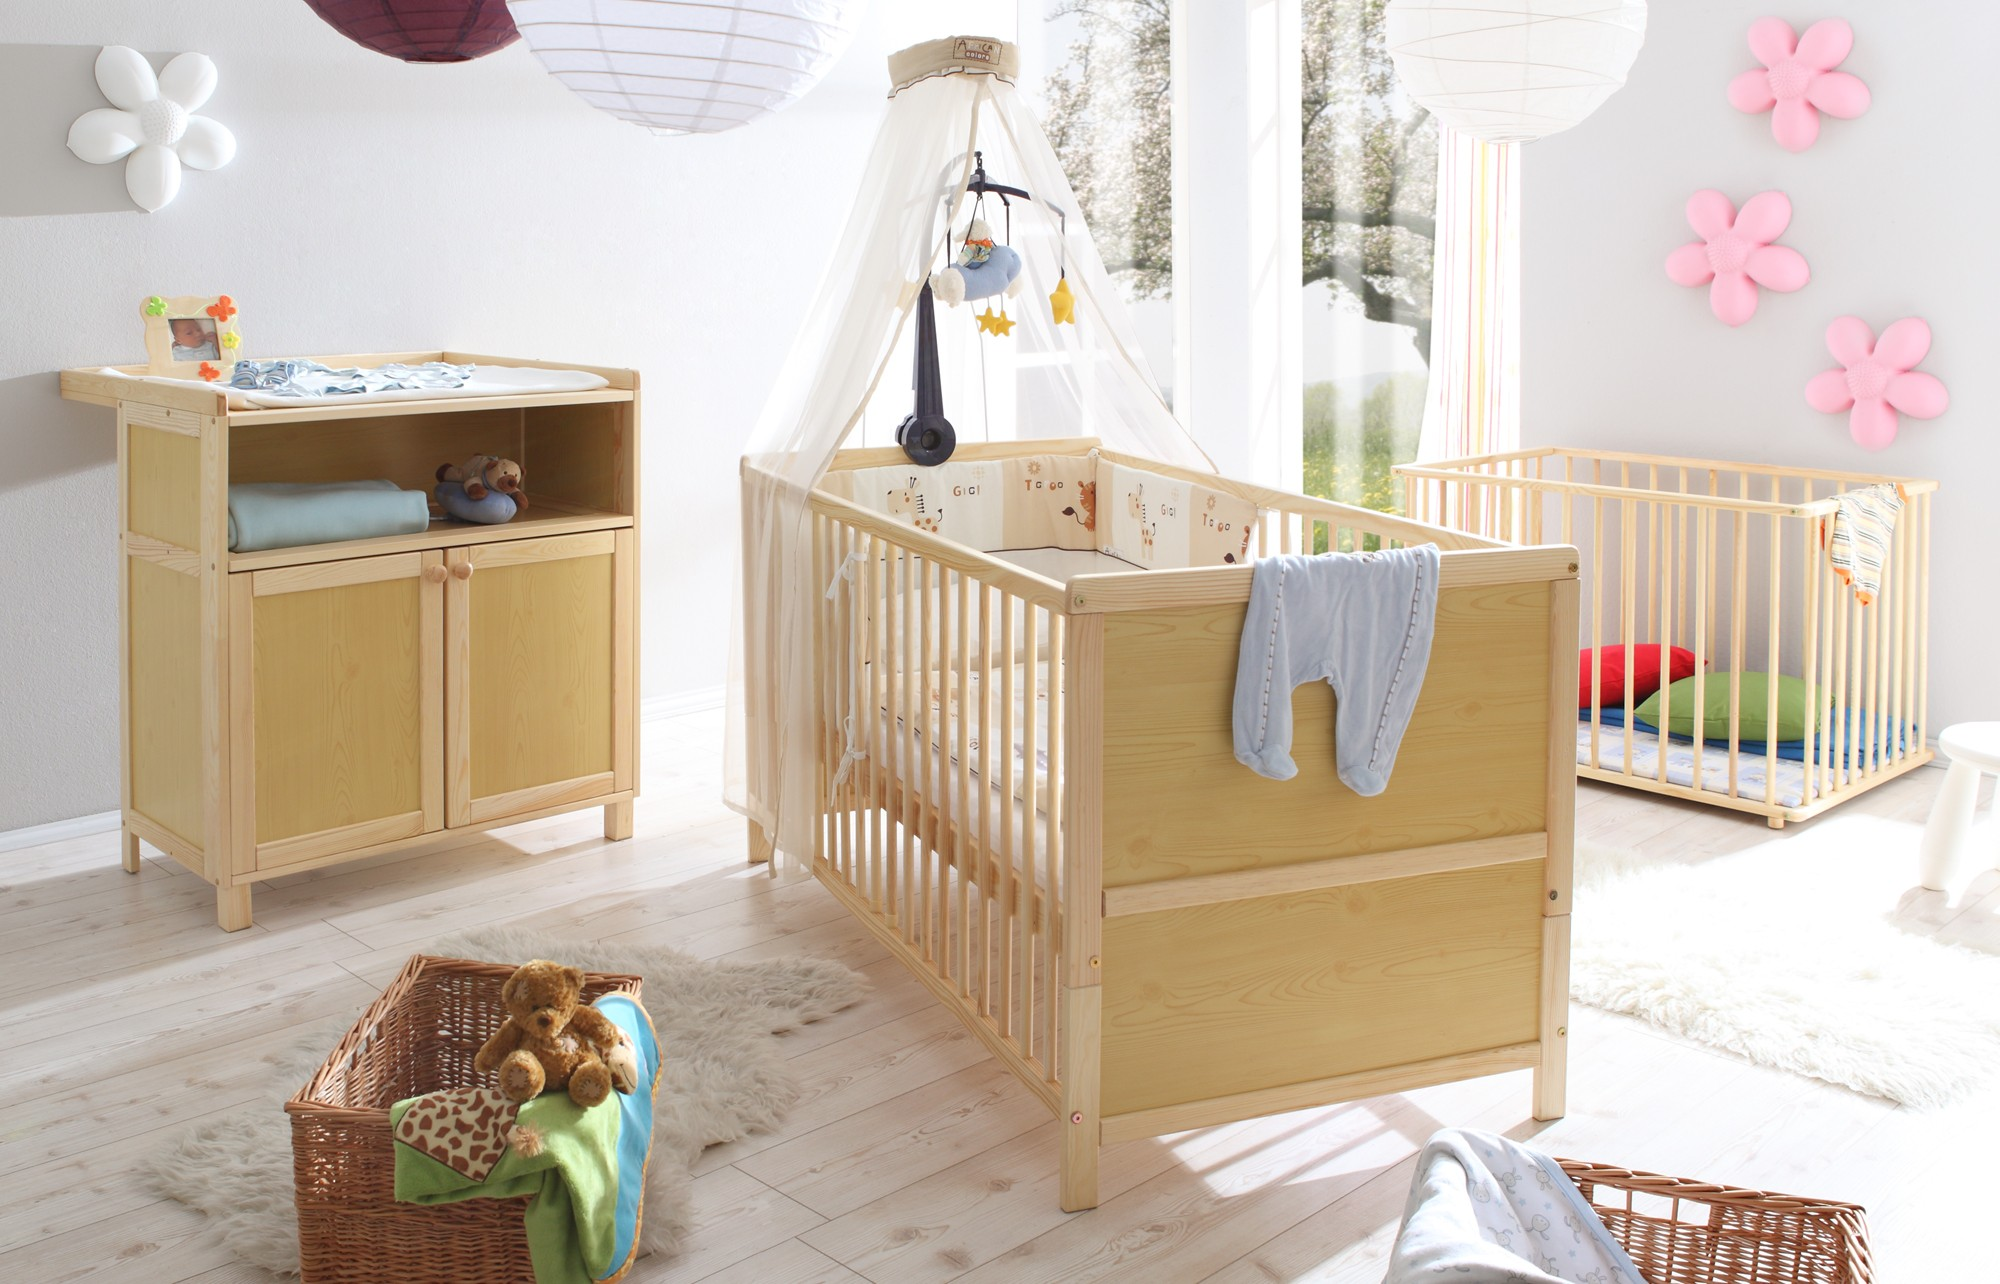 babyzimmer 3 teilig kiefer natur h c m bel. Black Bedroom Furniture Sets. Home Design Ideas